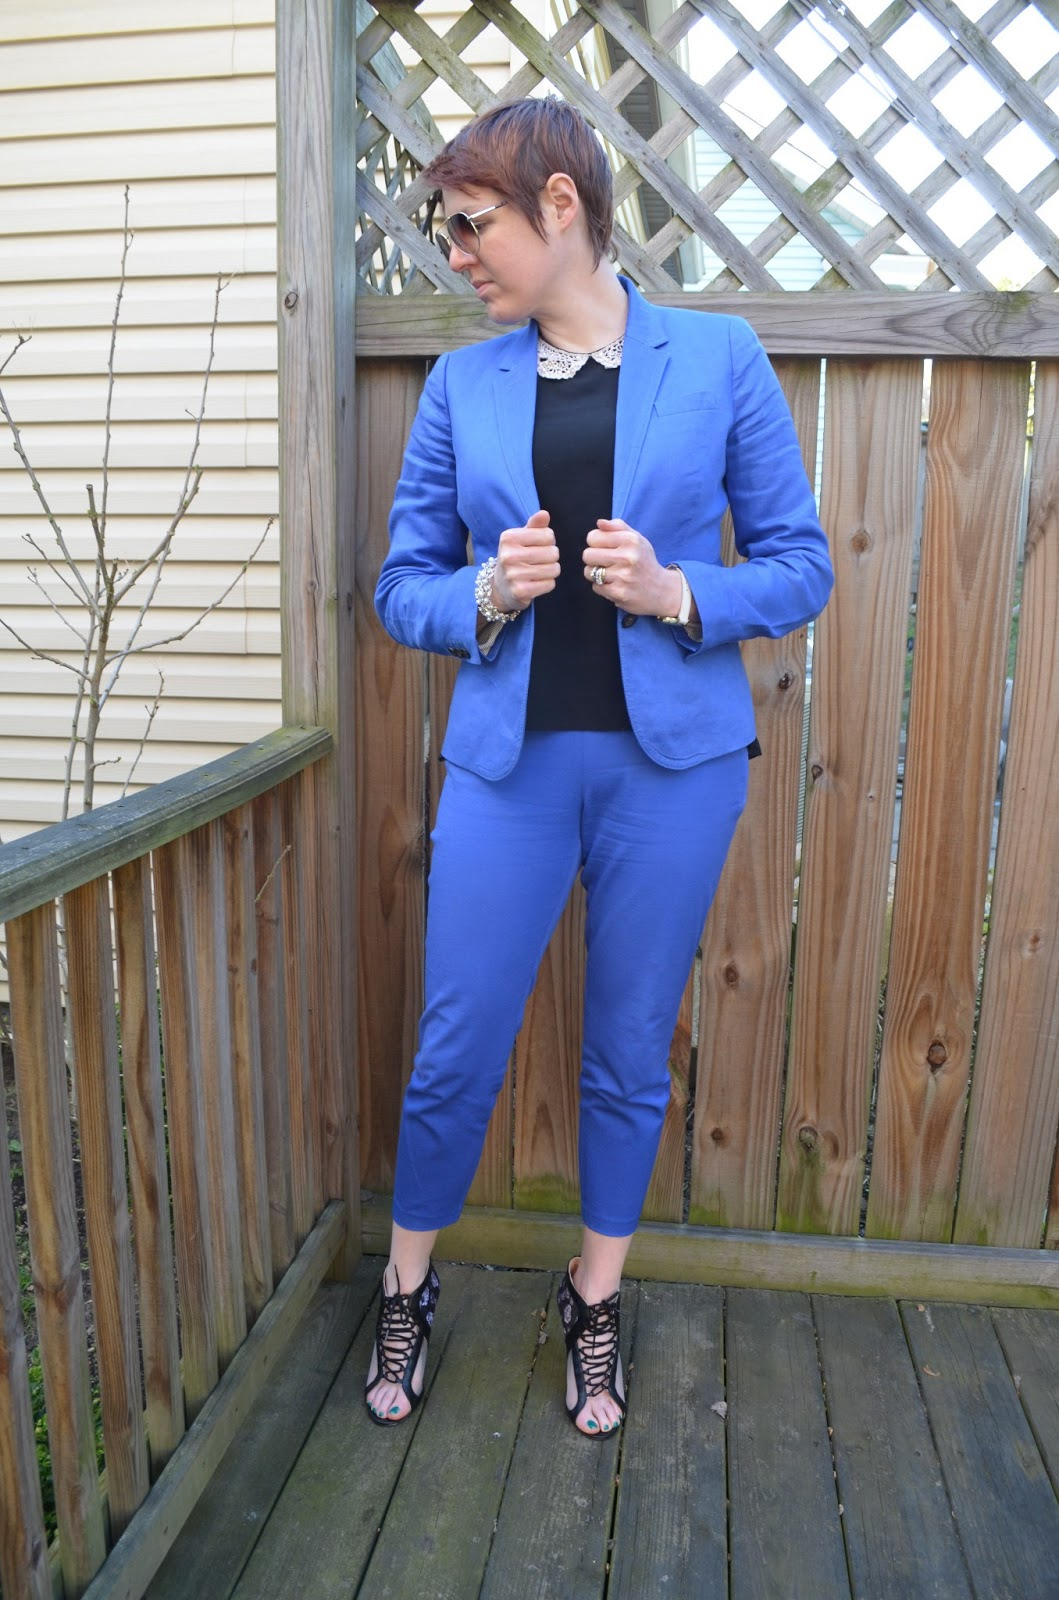 ffb74e078e3 Outfits Not Just Clothes  Little Blue Suit  LBS